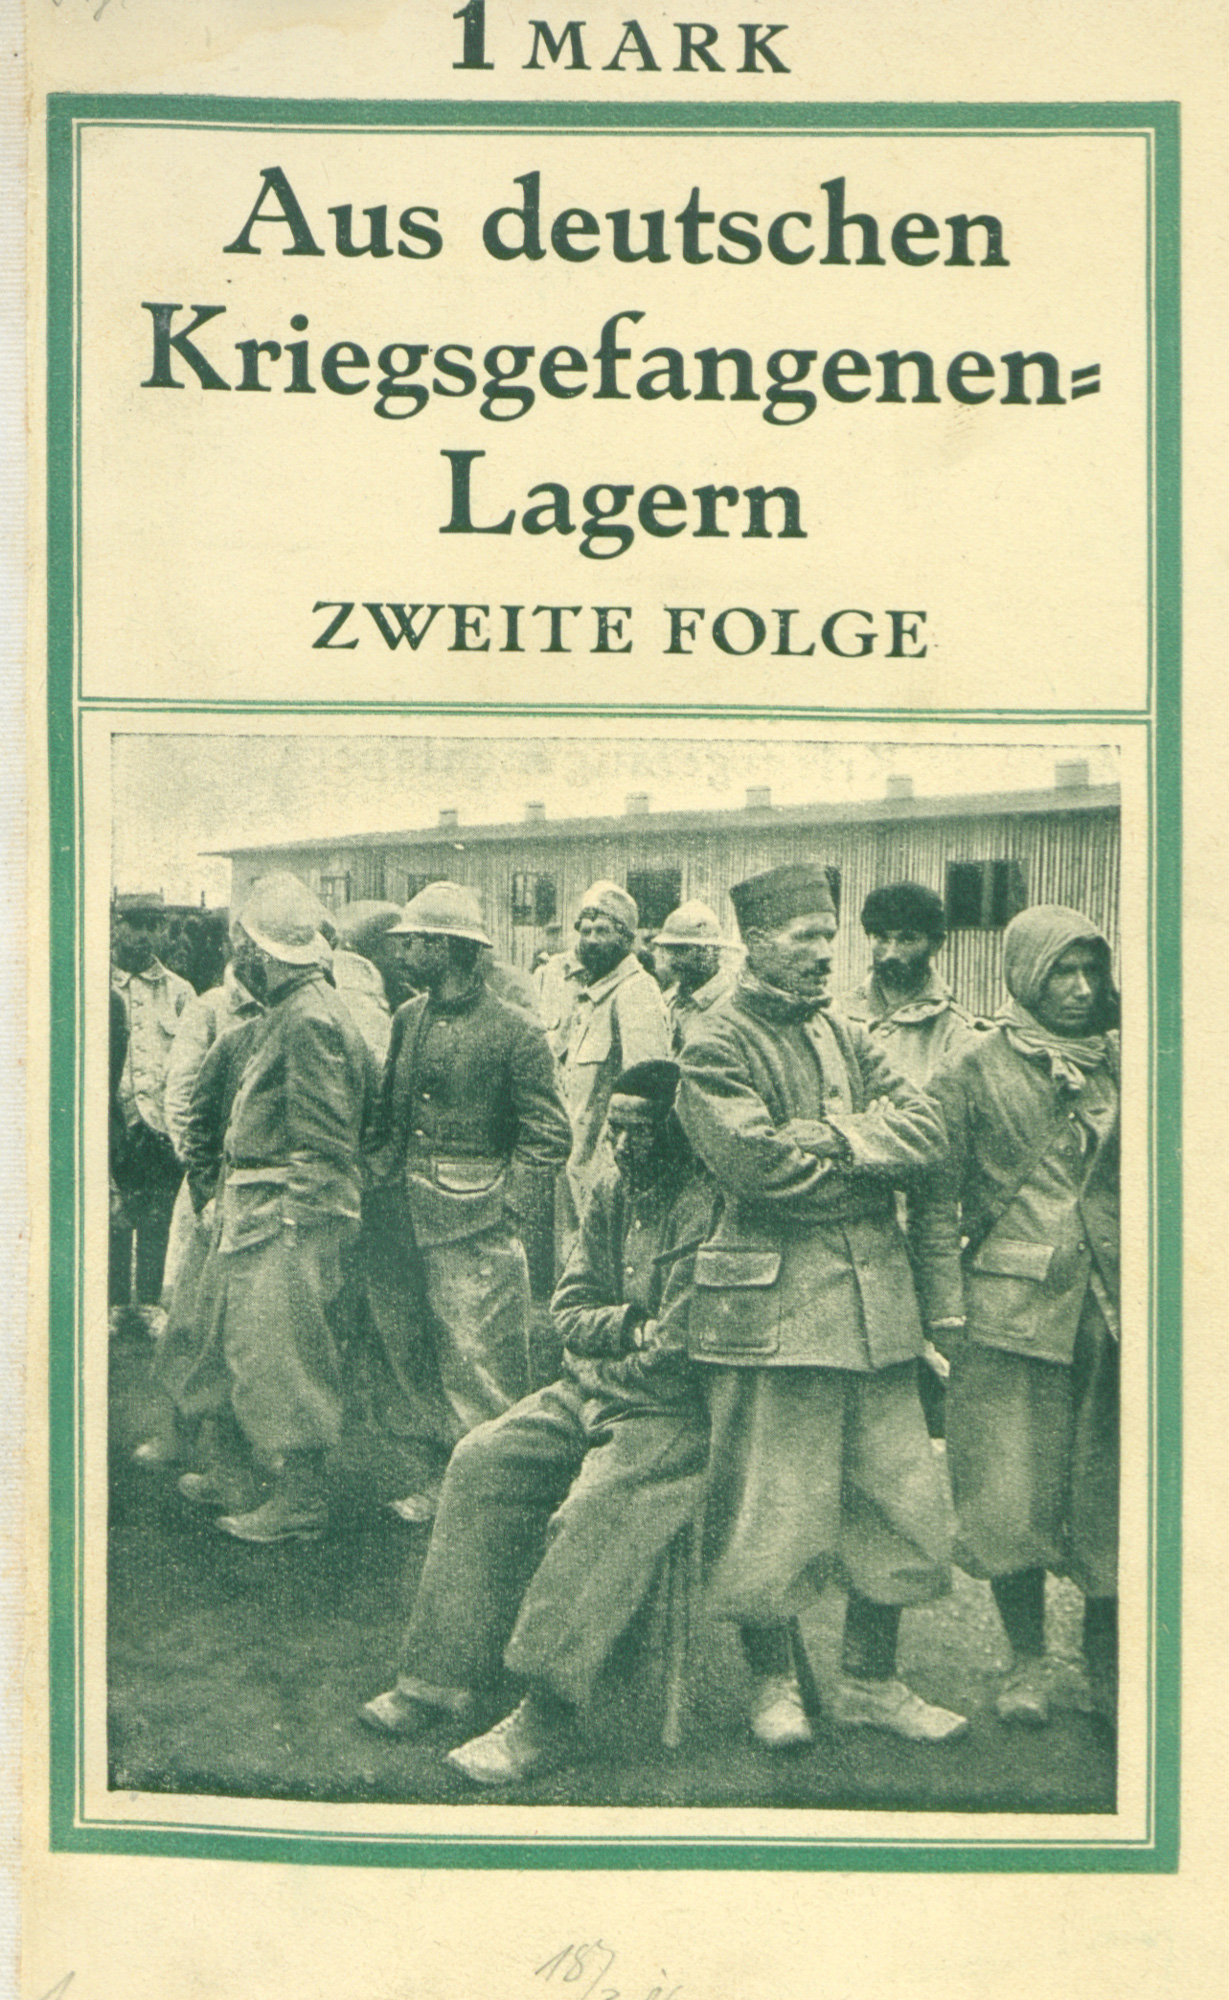 Photos of prisoners of war camps in Germany published in a German publication in 1916.